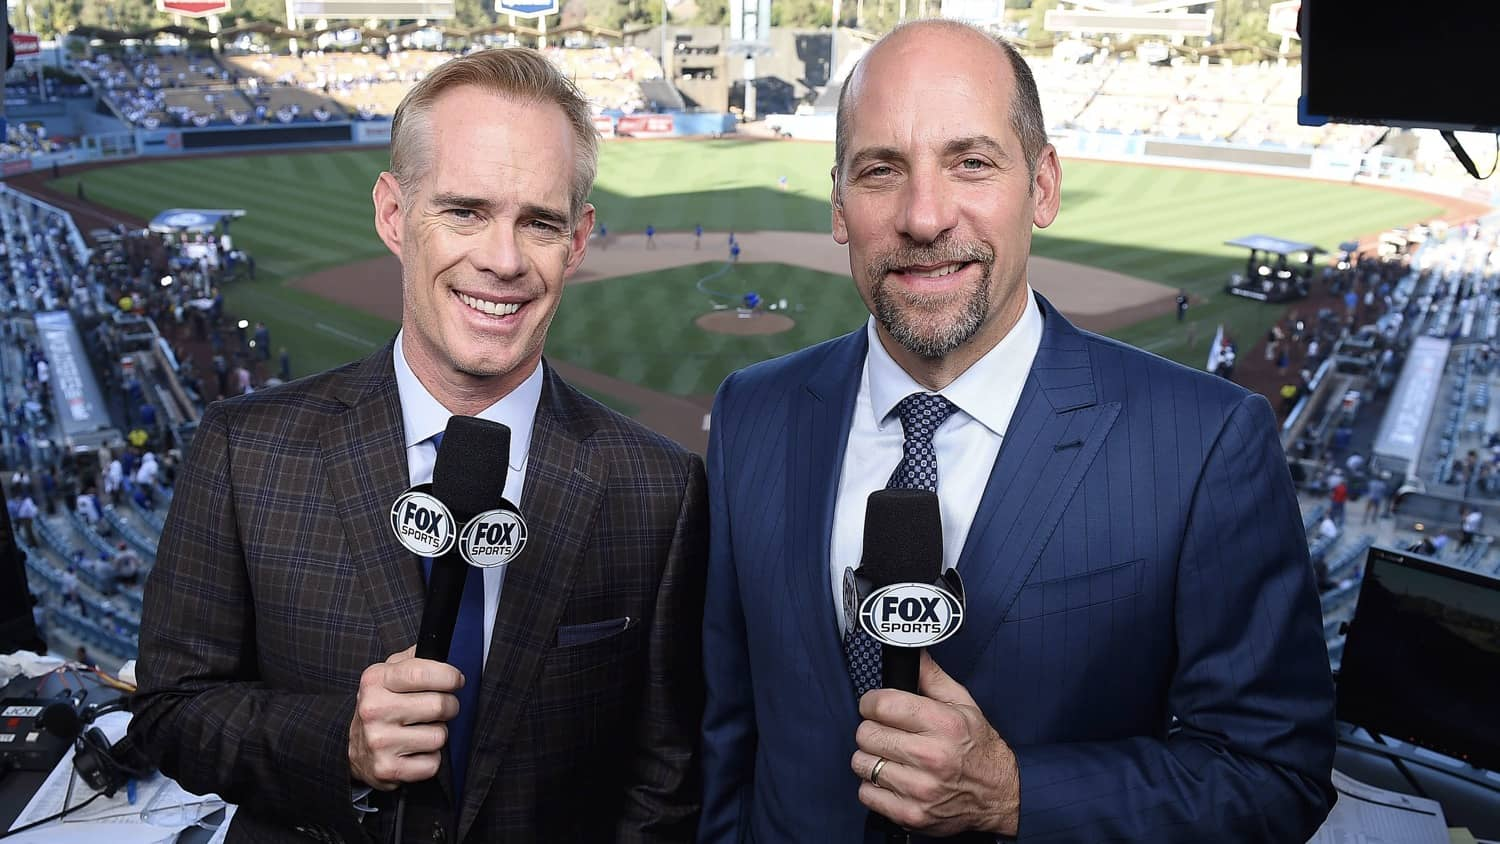 LOS ANGELES - OCTOBER 26: Joe Buck and John Smoltz at the World Series on Fox - Game 3 - Boston Red Sox at Los Angeles Dodgers at Dodgers Stadium on October 26, 2018 in Los Angeles, California. (Photo by Frank Micelotta/Fox/PictureGroup)